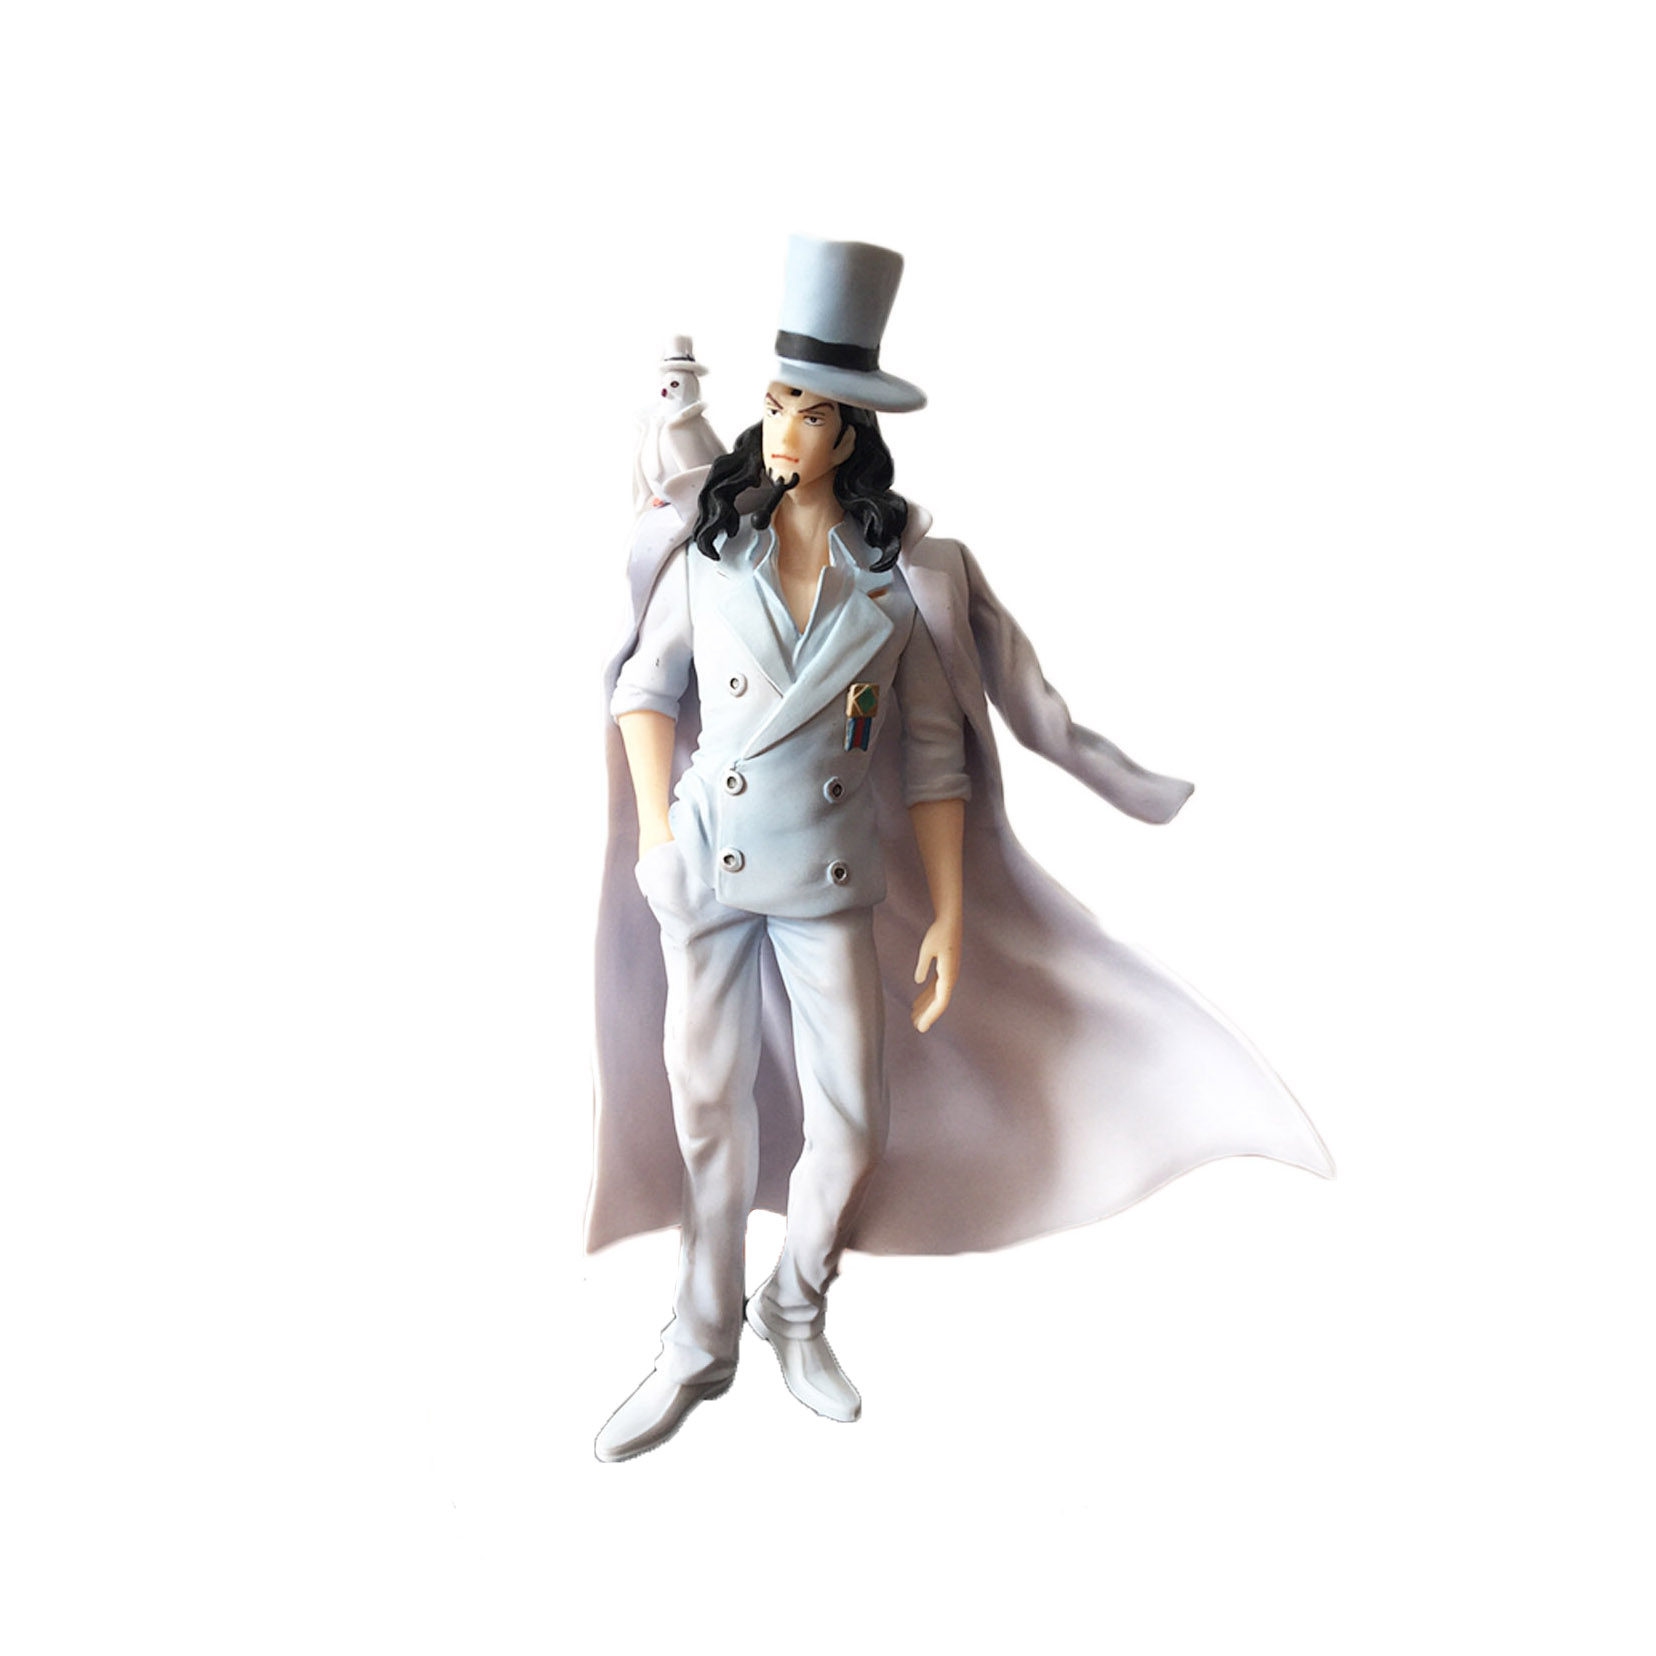 Chanycore Anime ONE PIECE GOLD Ver onepiece NEW WORLD PVC Action Figures 16CM CP9 Rob Lucci collect model toys classic anime 25cm cp9 rob lucci one piece anime collectible action figures pvc collection toys men kids christmas gift